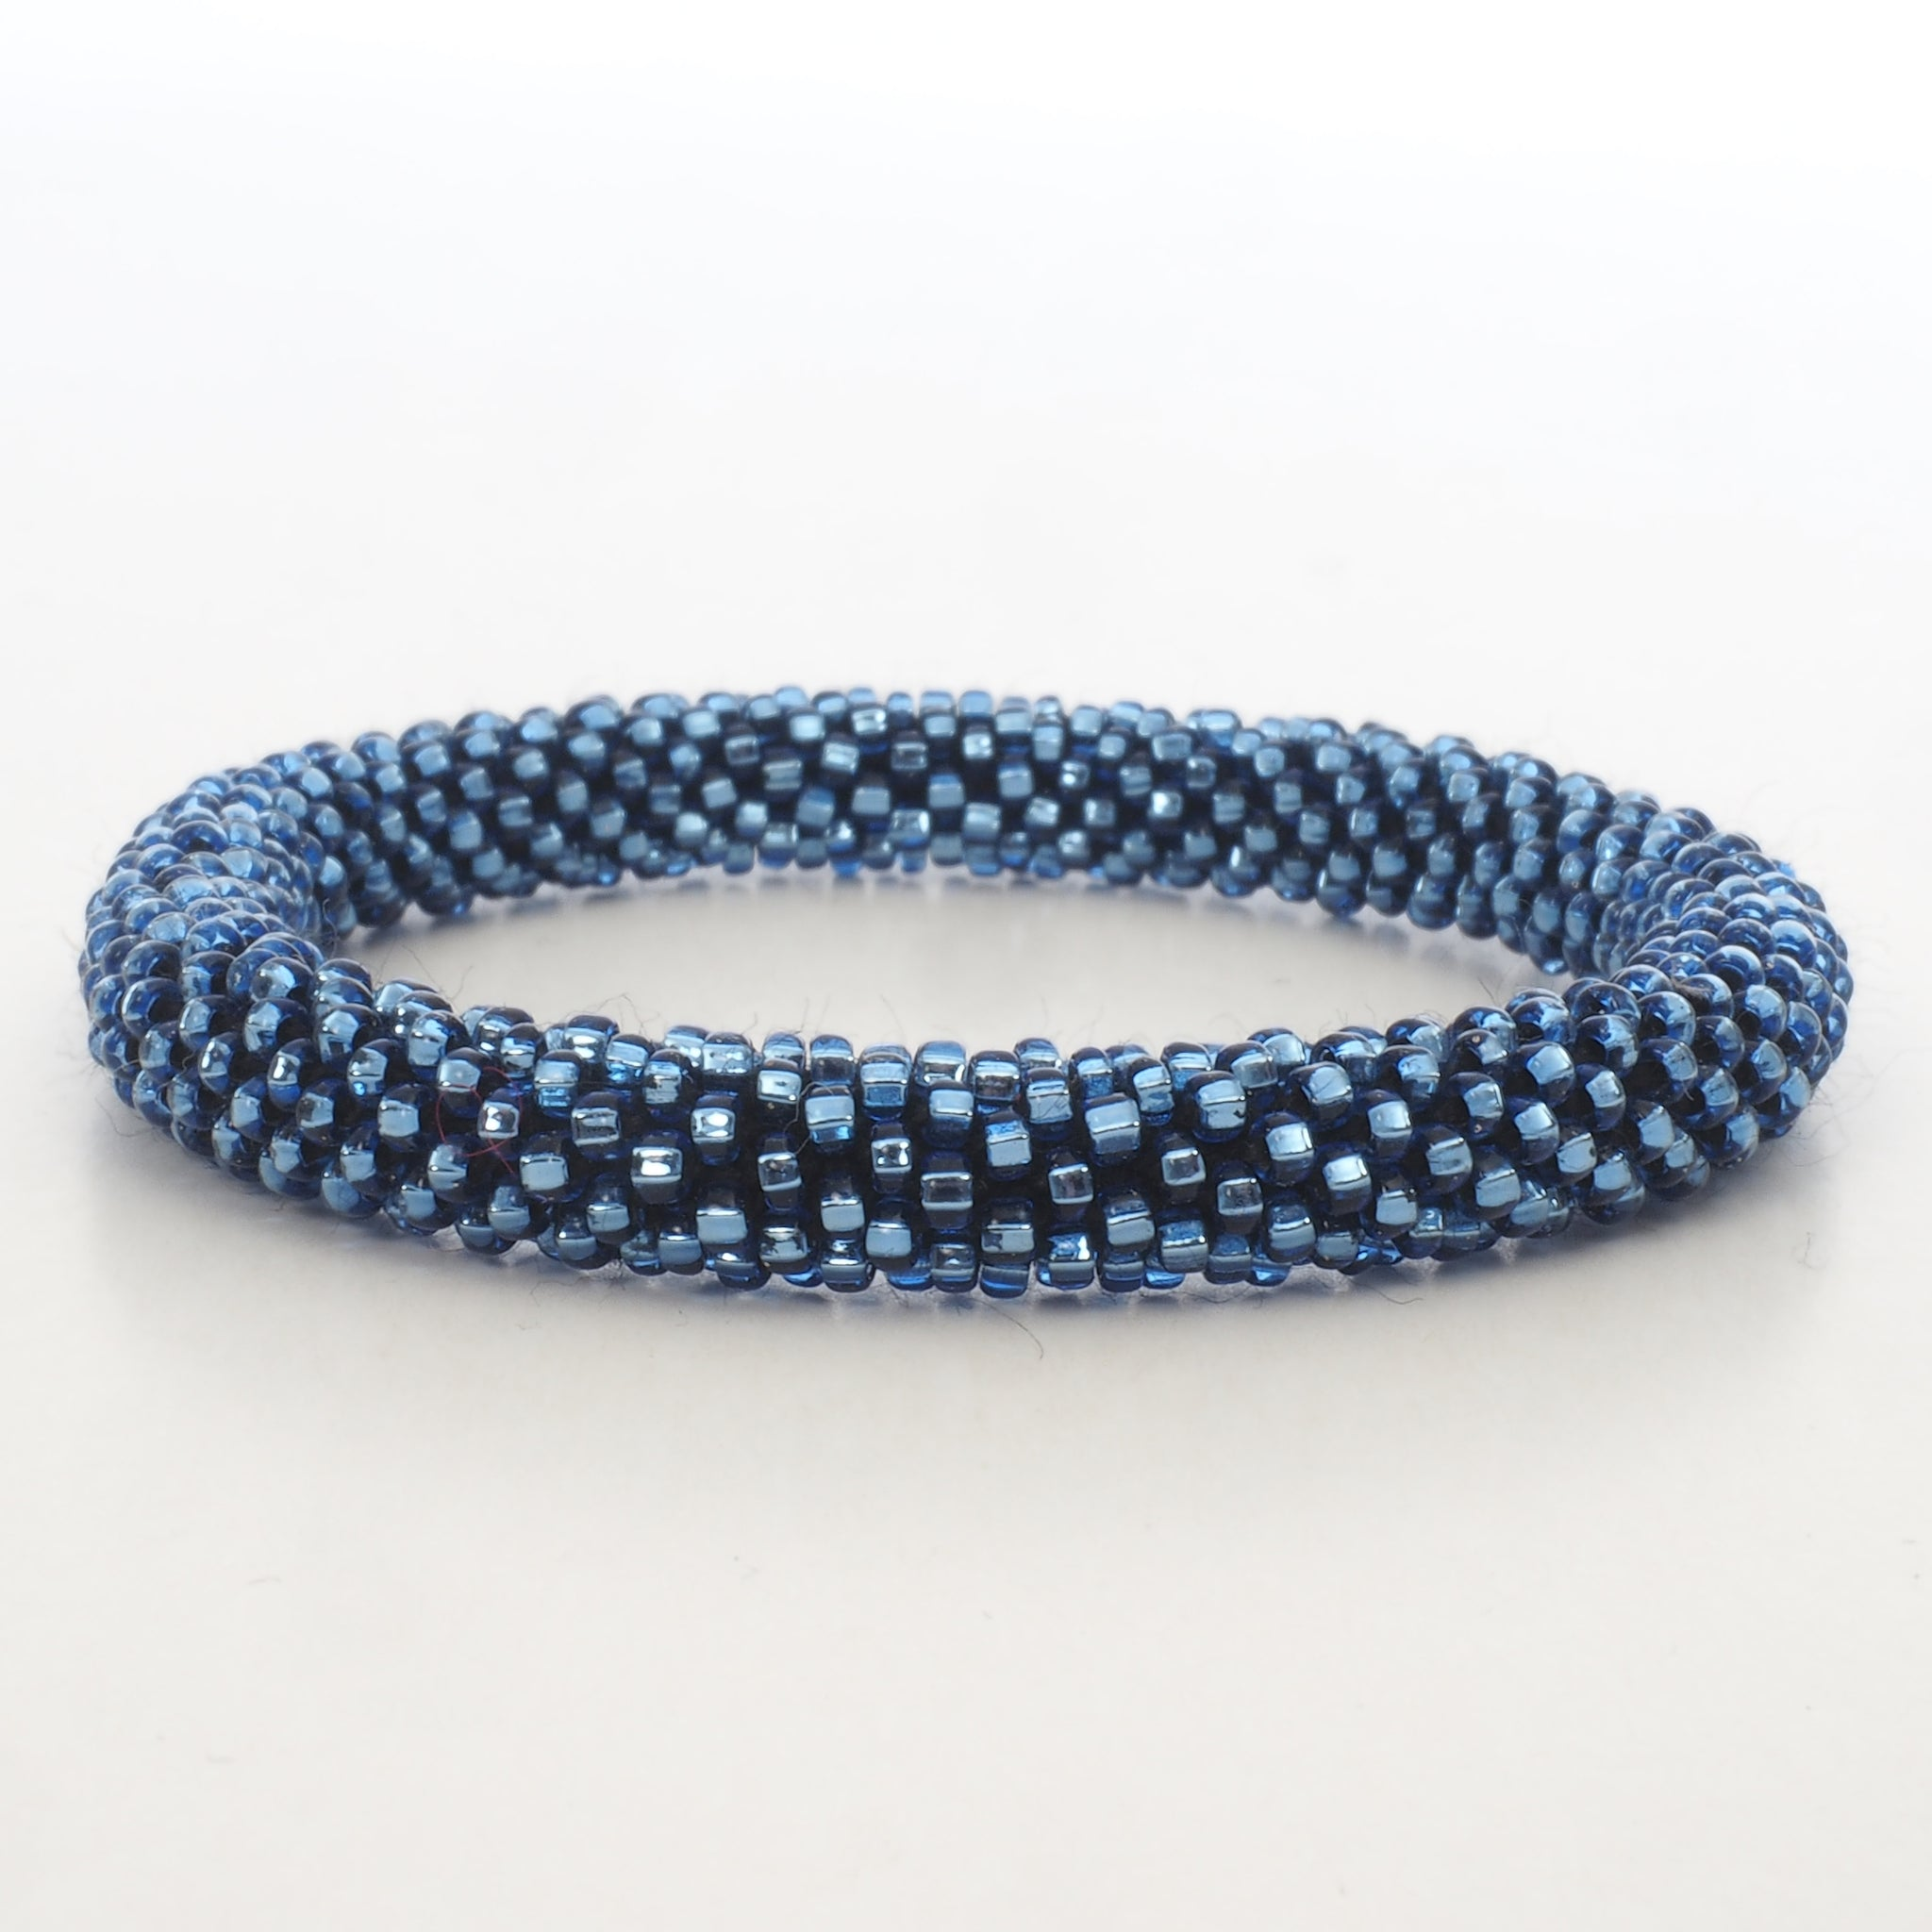 Beaded Bracelet - Shiny Blue